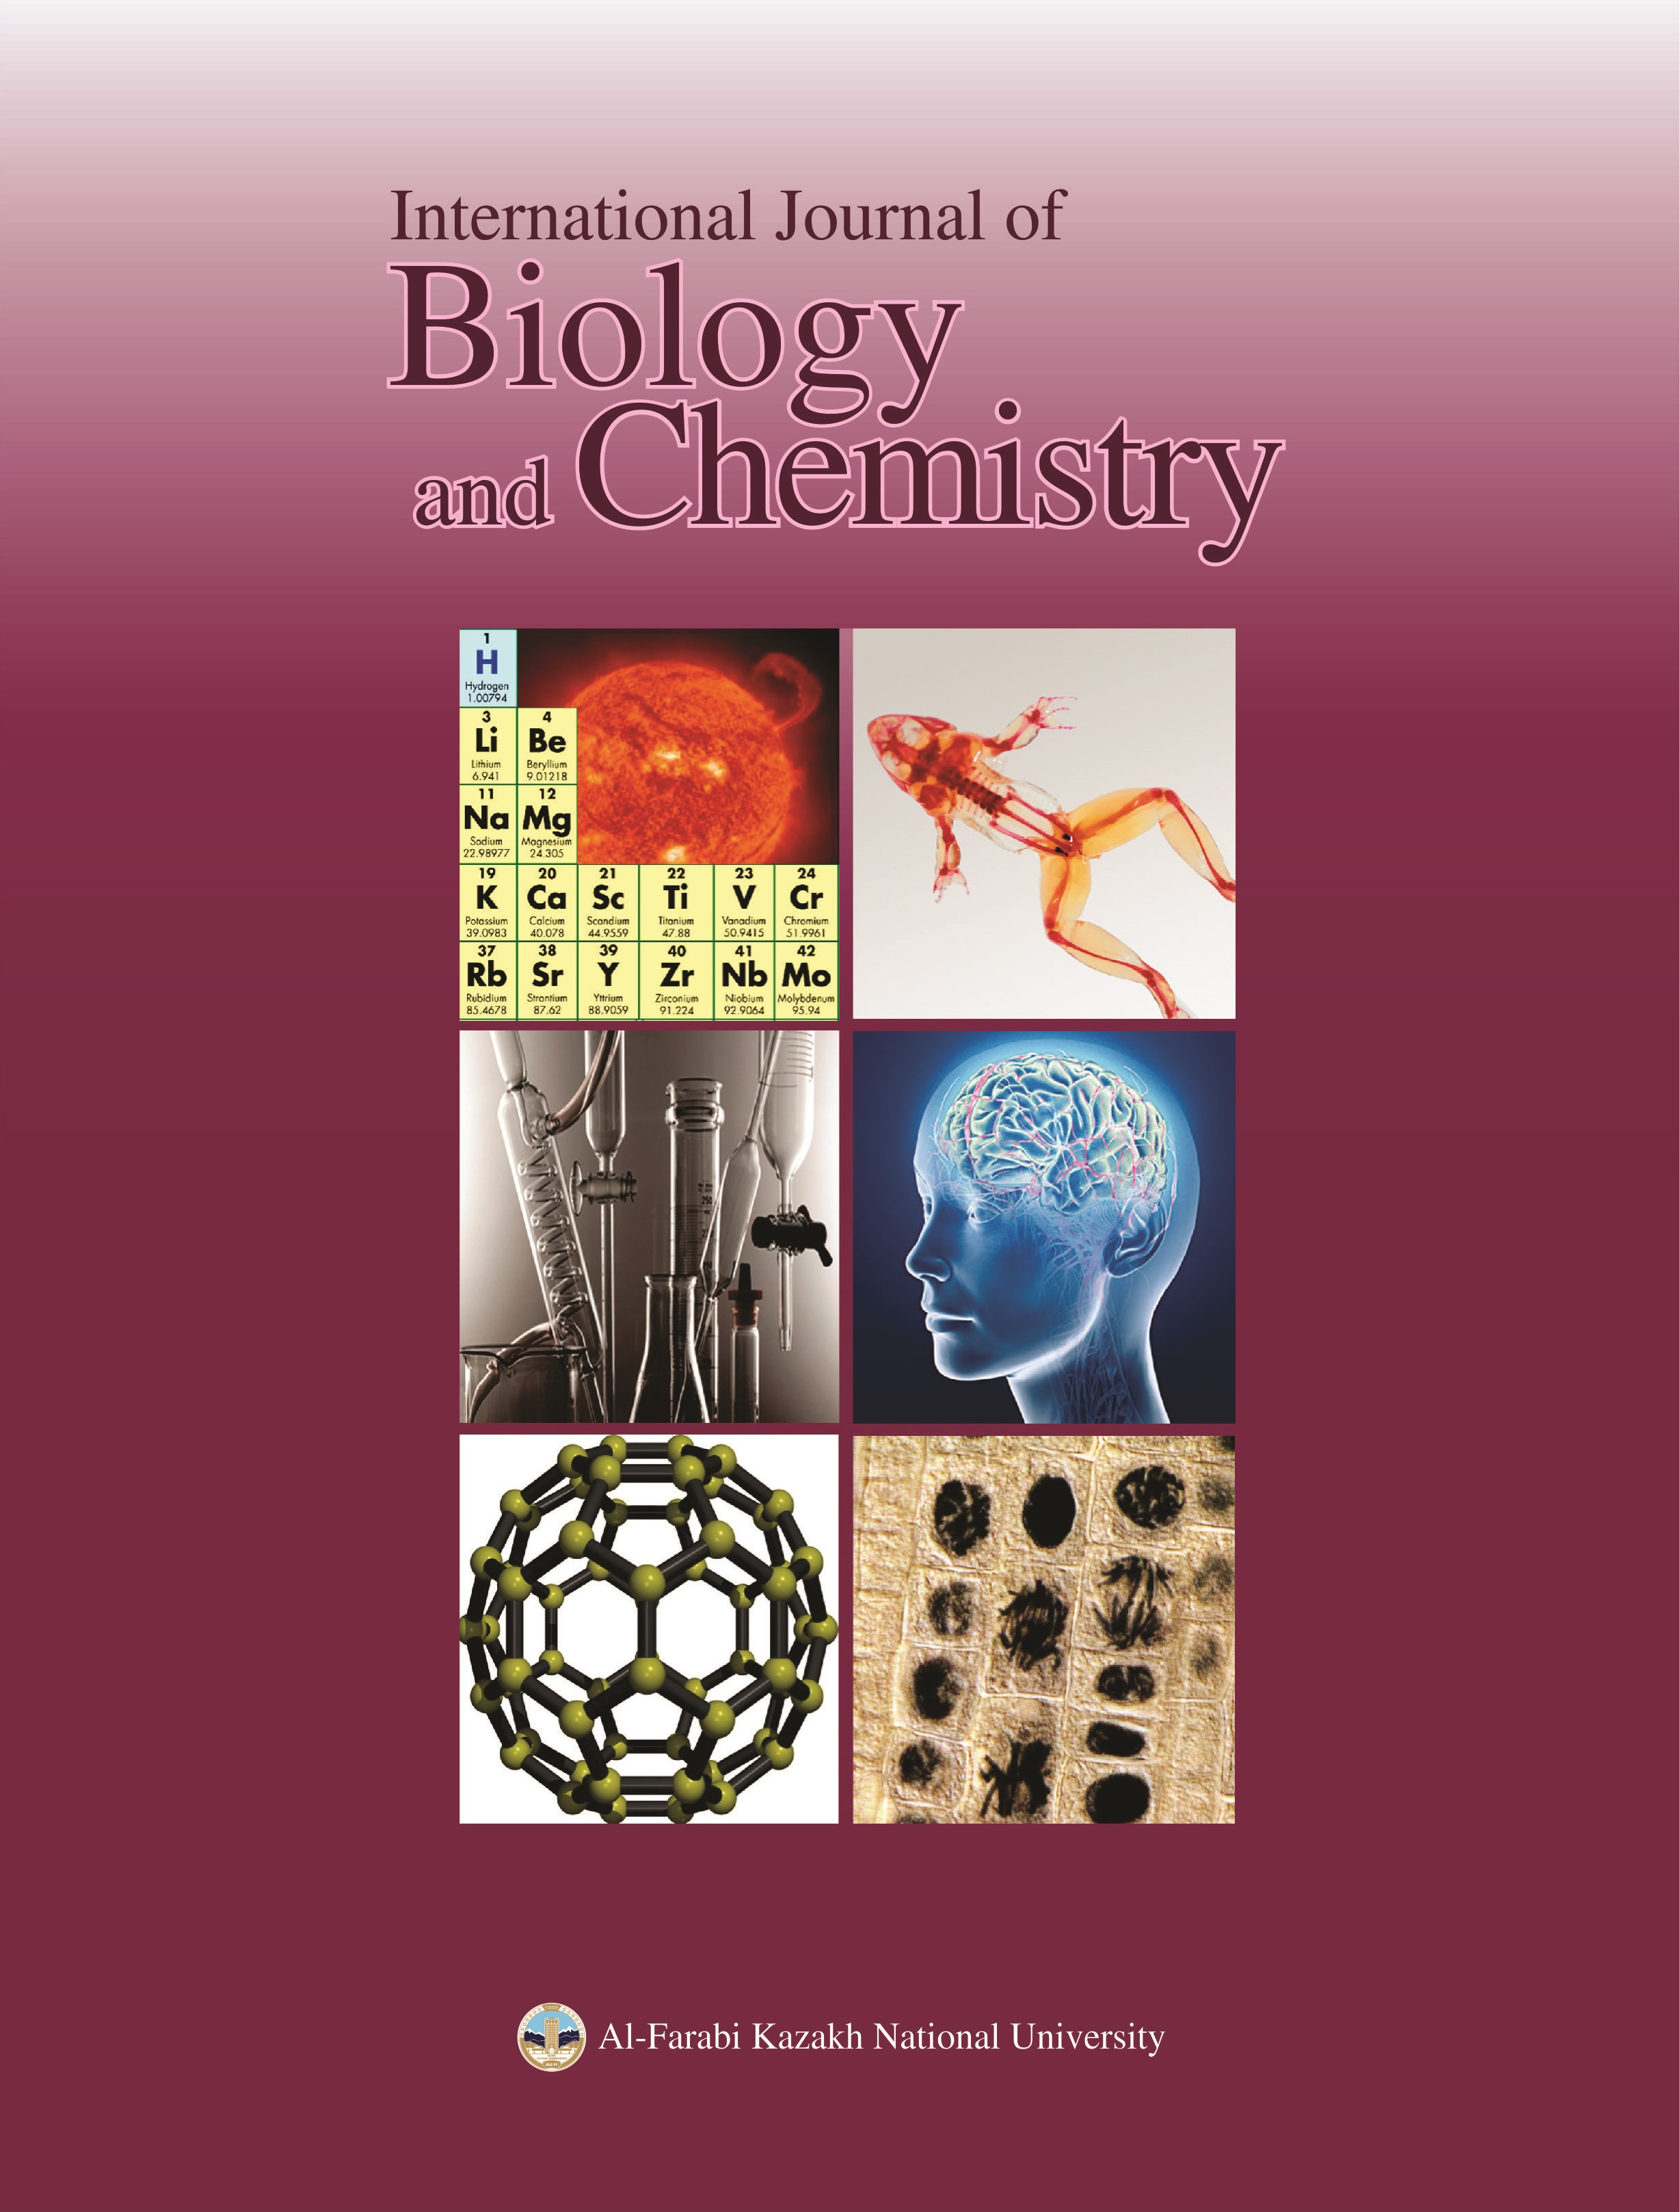 View No. 3 (2012): International Journal of Biology and Chemistry